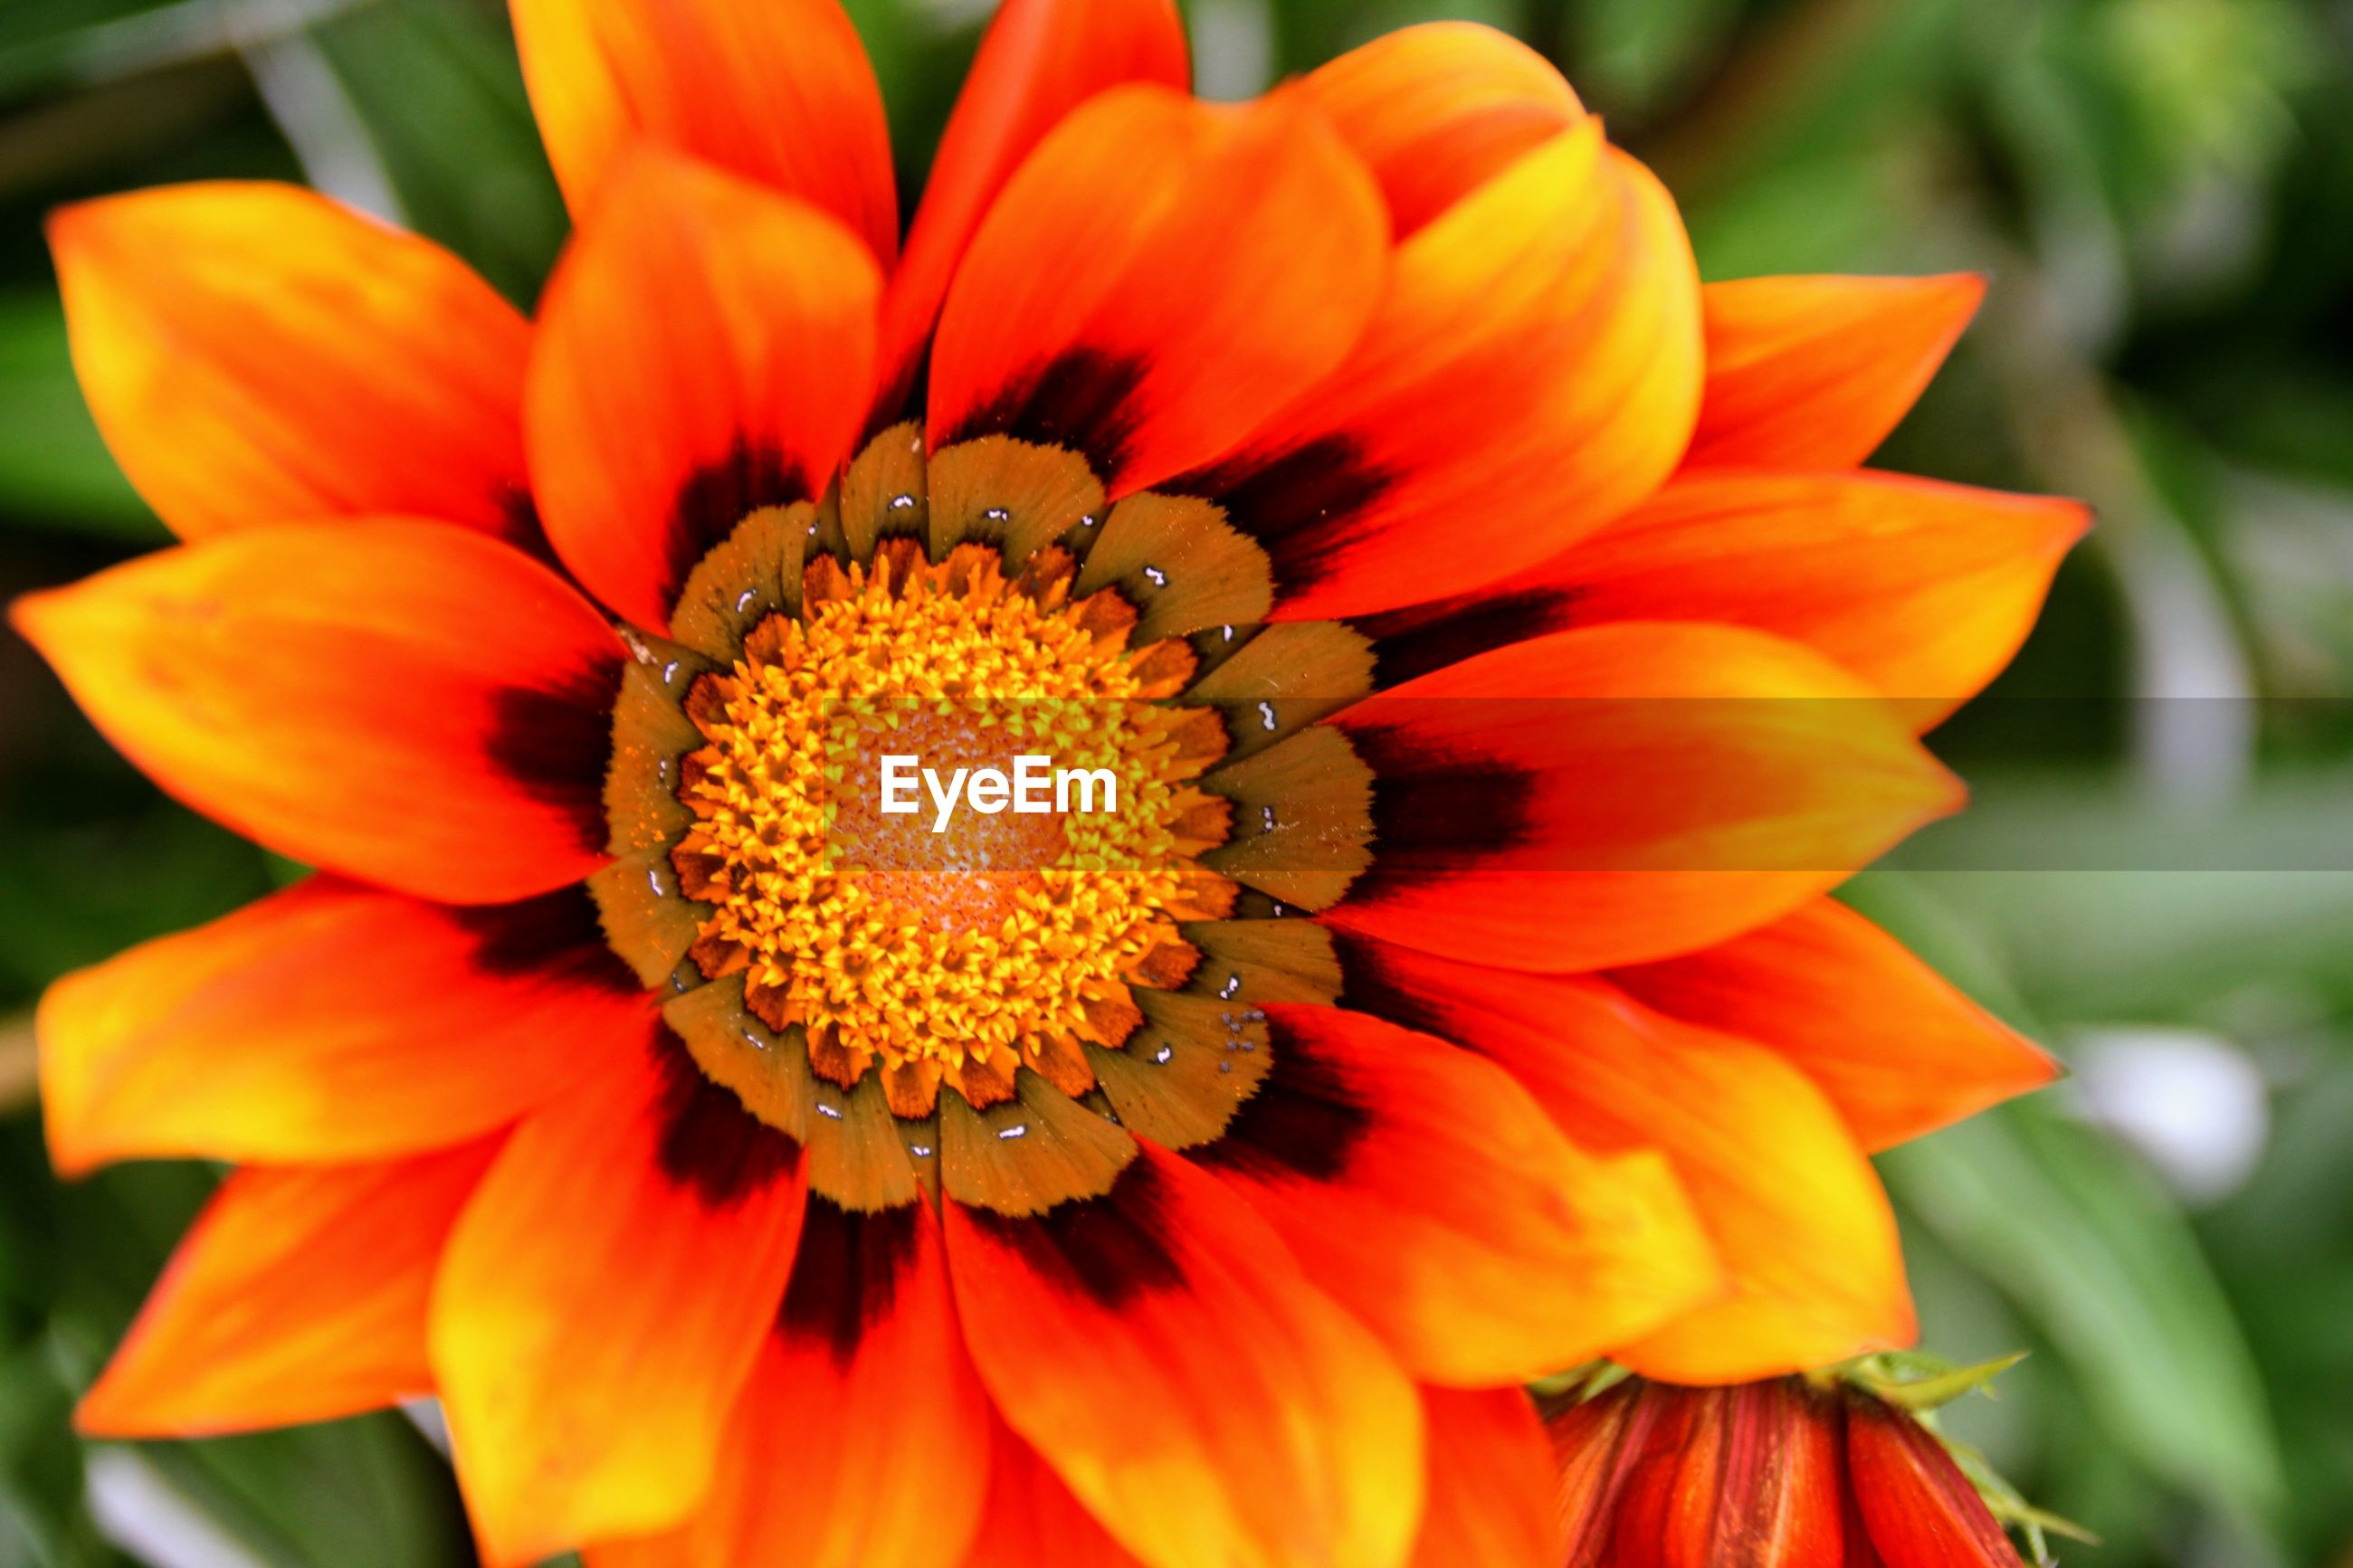 CLOSE-UP OF RED AND ORANGE FLOWER